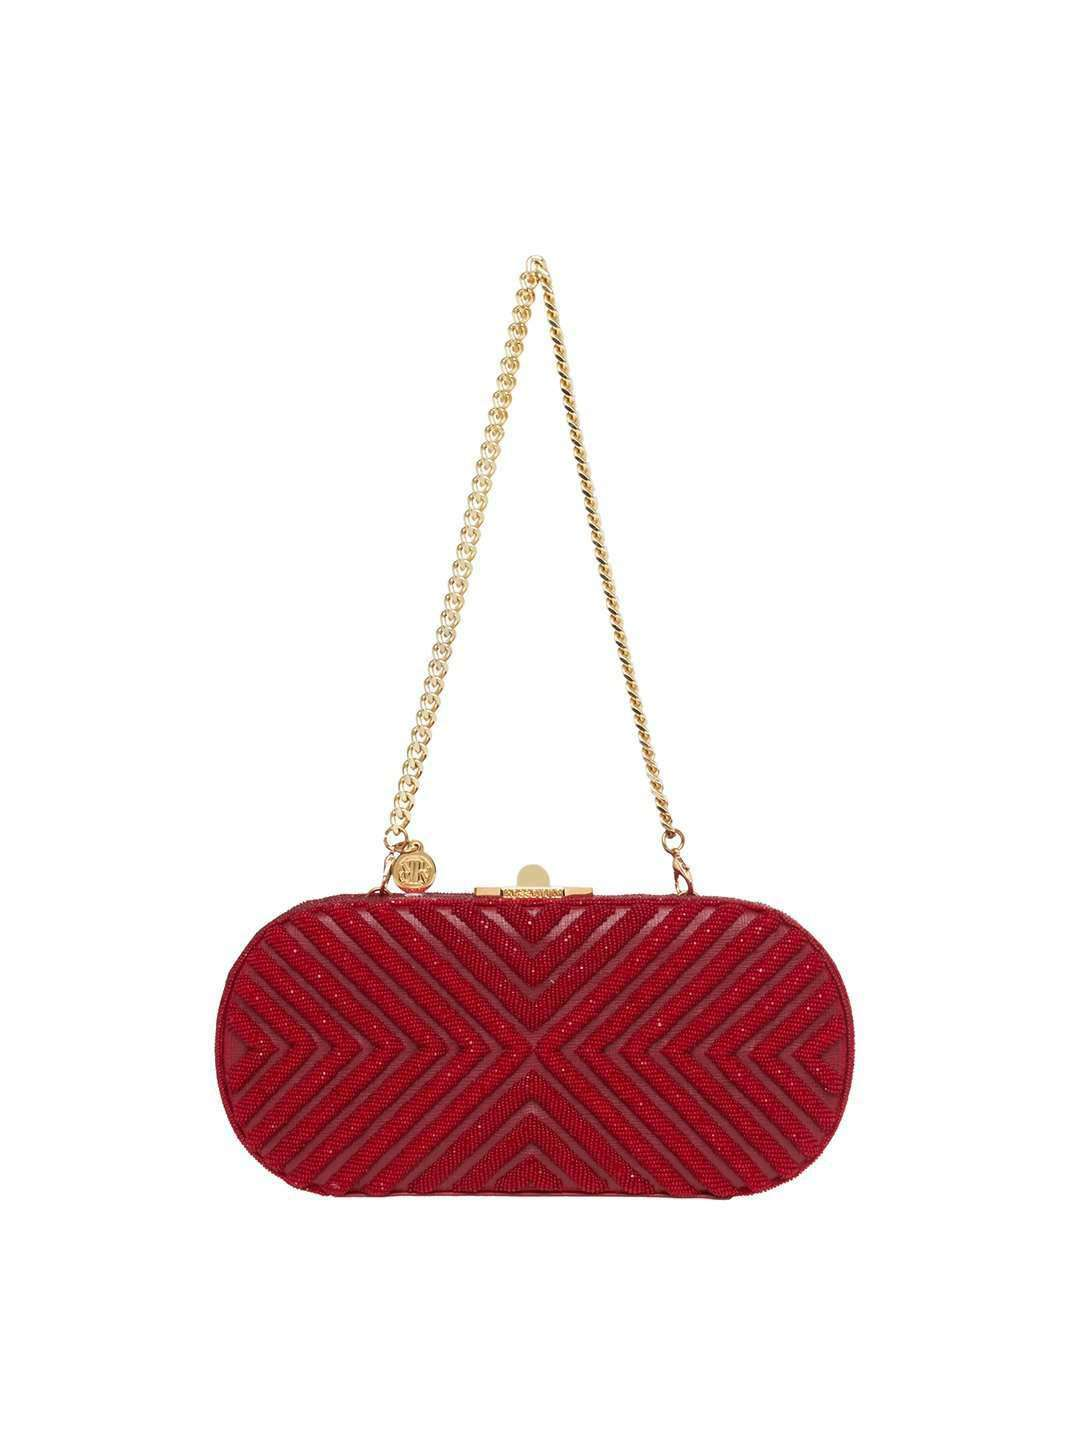 LAURIE RUBY RED CLUTCH BAG - ROSSOYUKI - Handbags